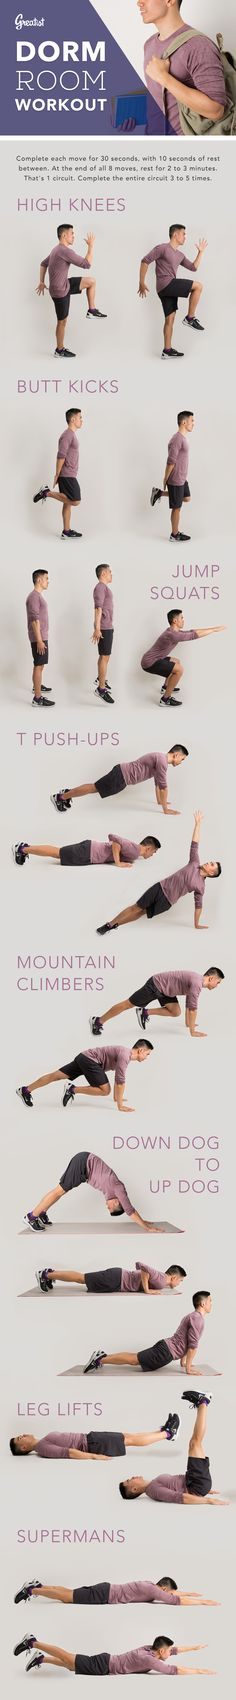 Spending a lot of time indoors studying? Heres 8 simple moves to keep fit. #quick #bodyweight #workout